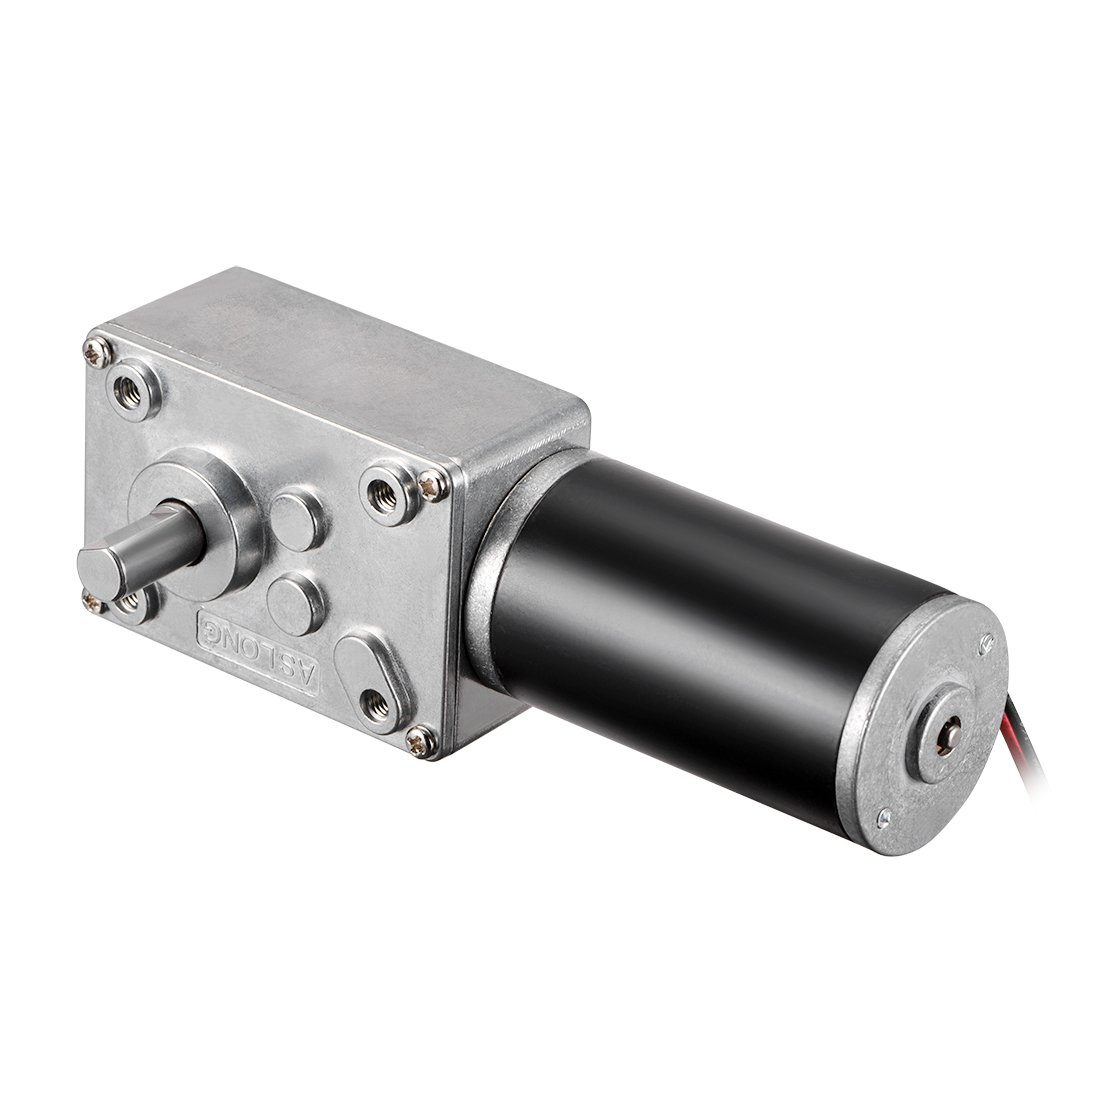 uxcell DC 12V 220RPM Worm Gear Motor 5kg-cm Reversible High Torque Speed Reduce Turbine Electric Gearbox Motor 8mm Shaft US-SA-AJD-300272